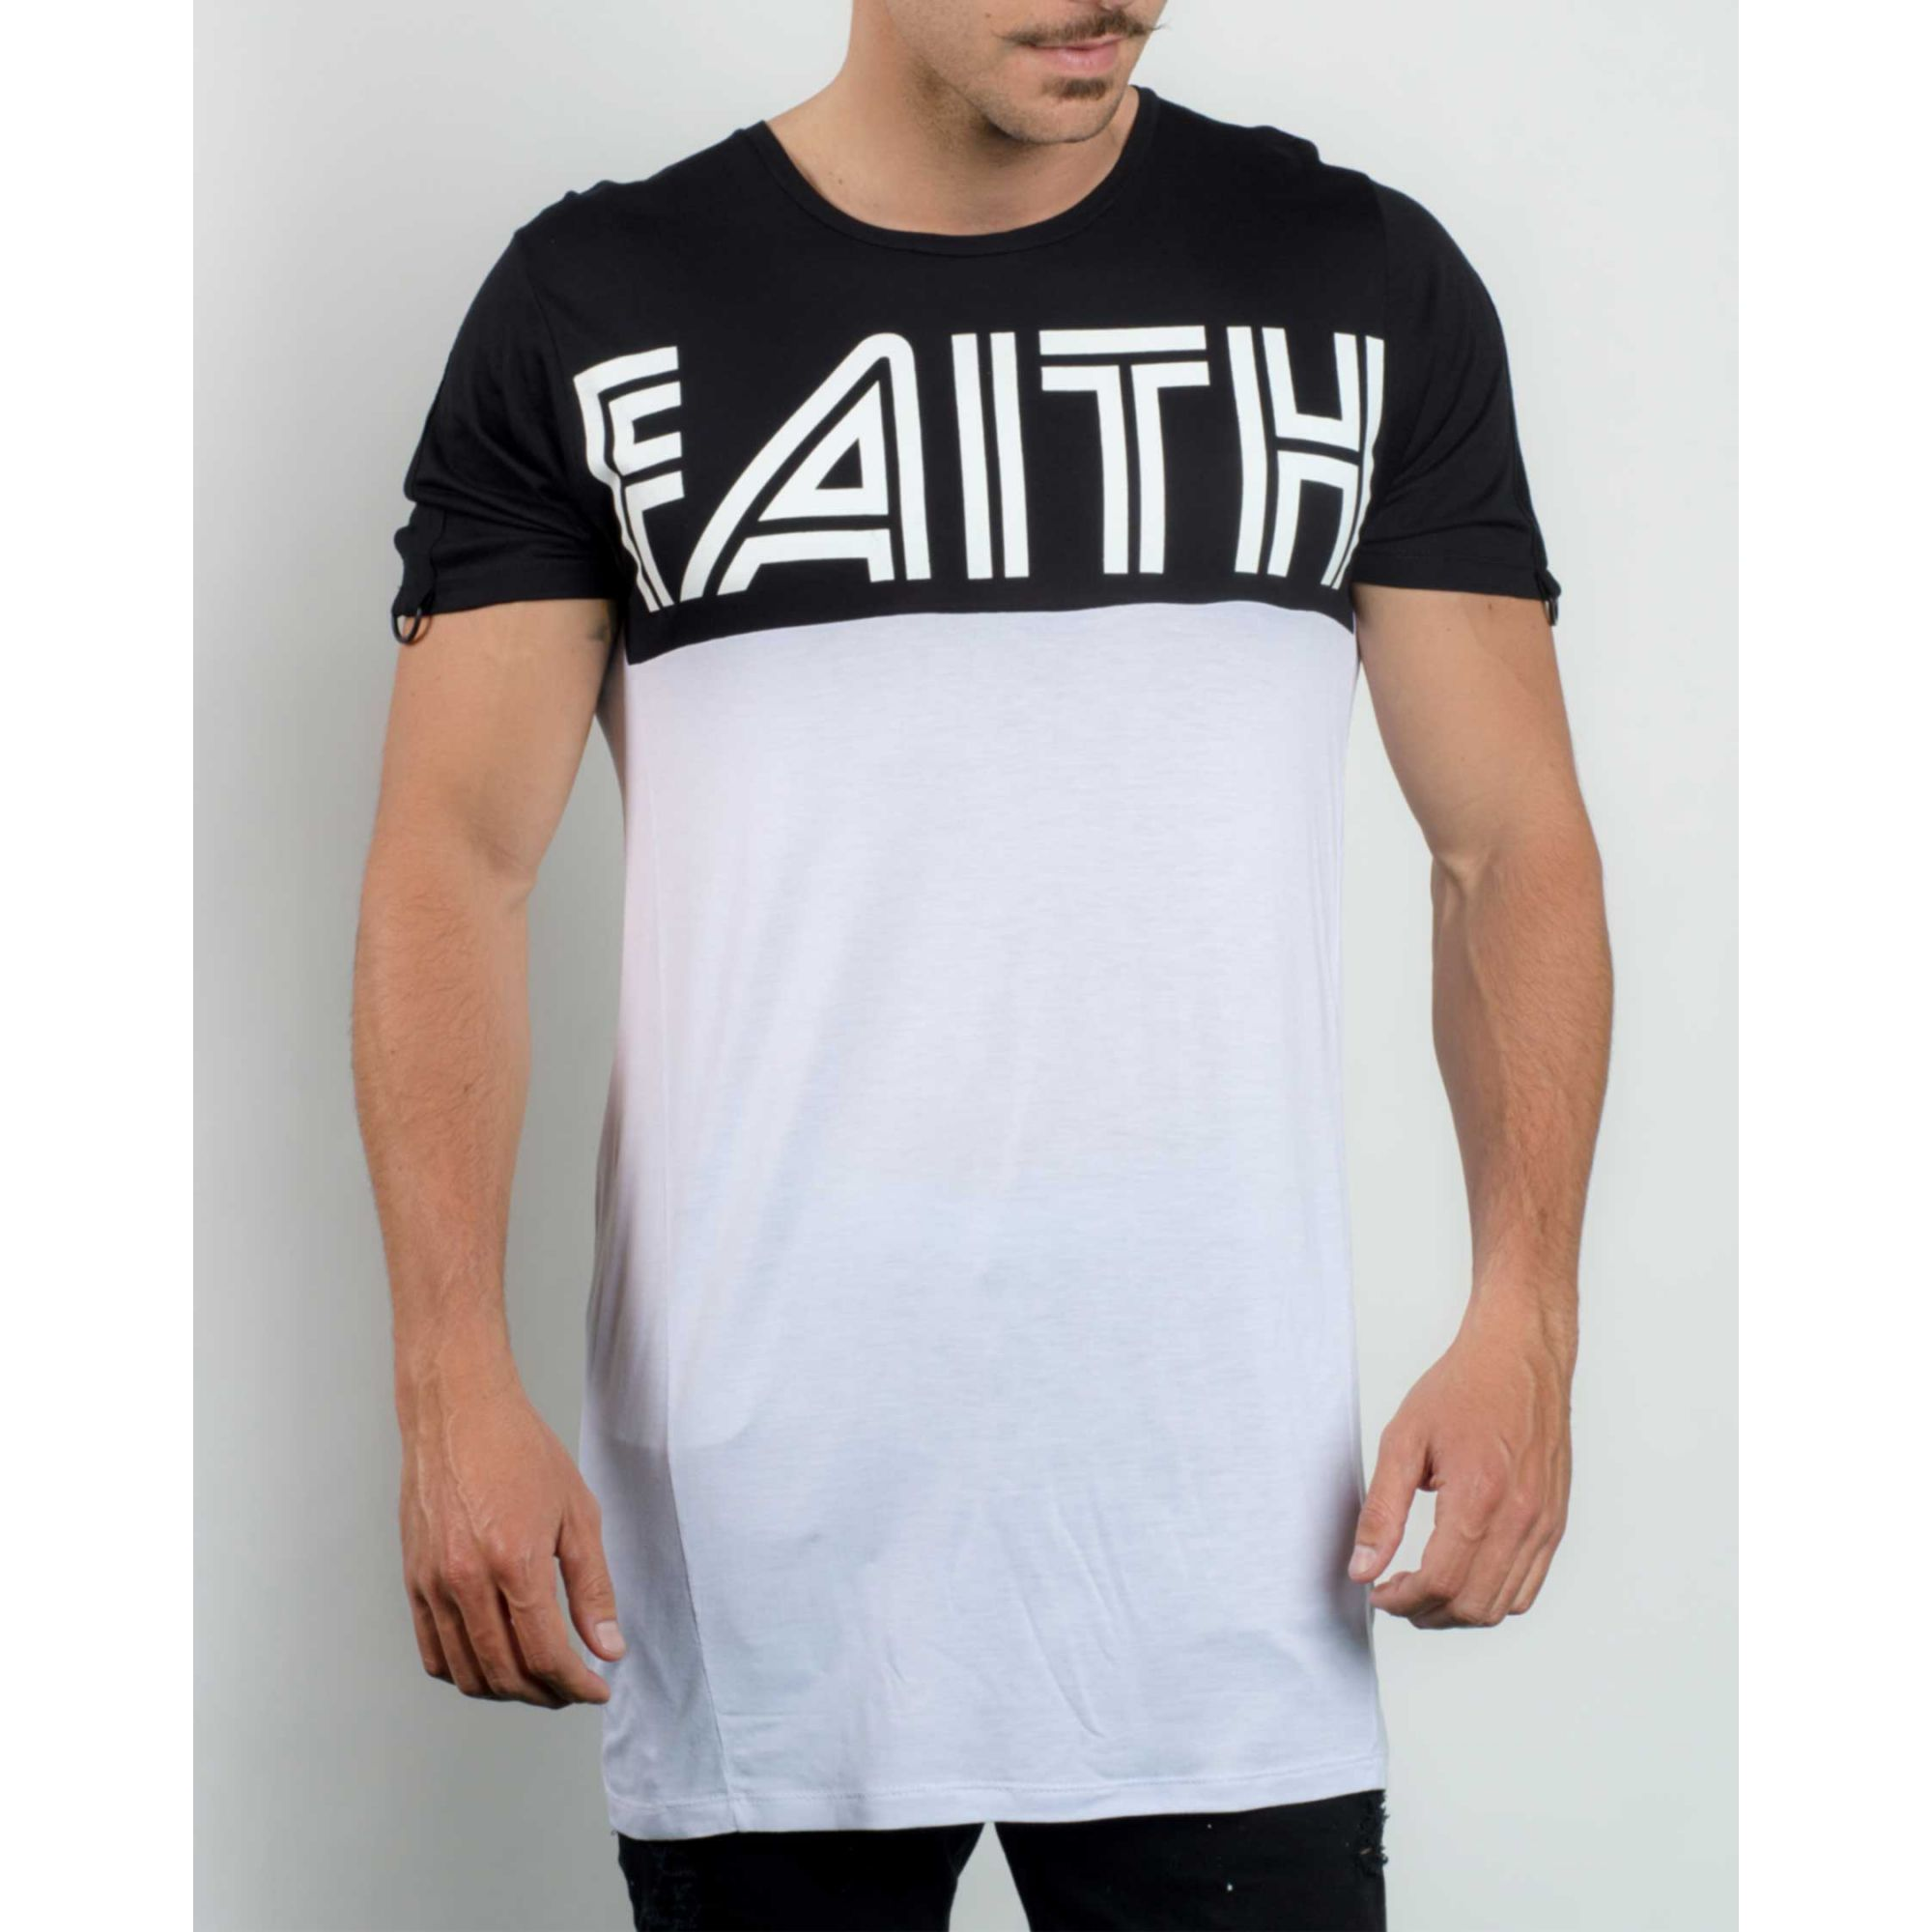 Camiseta Buh Faith